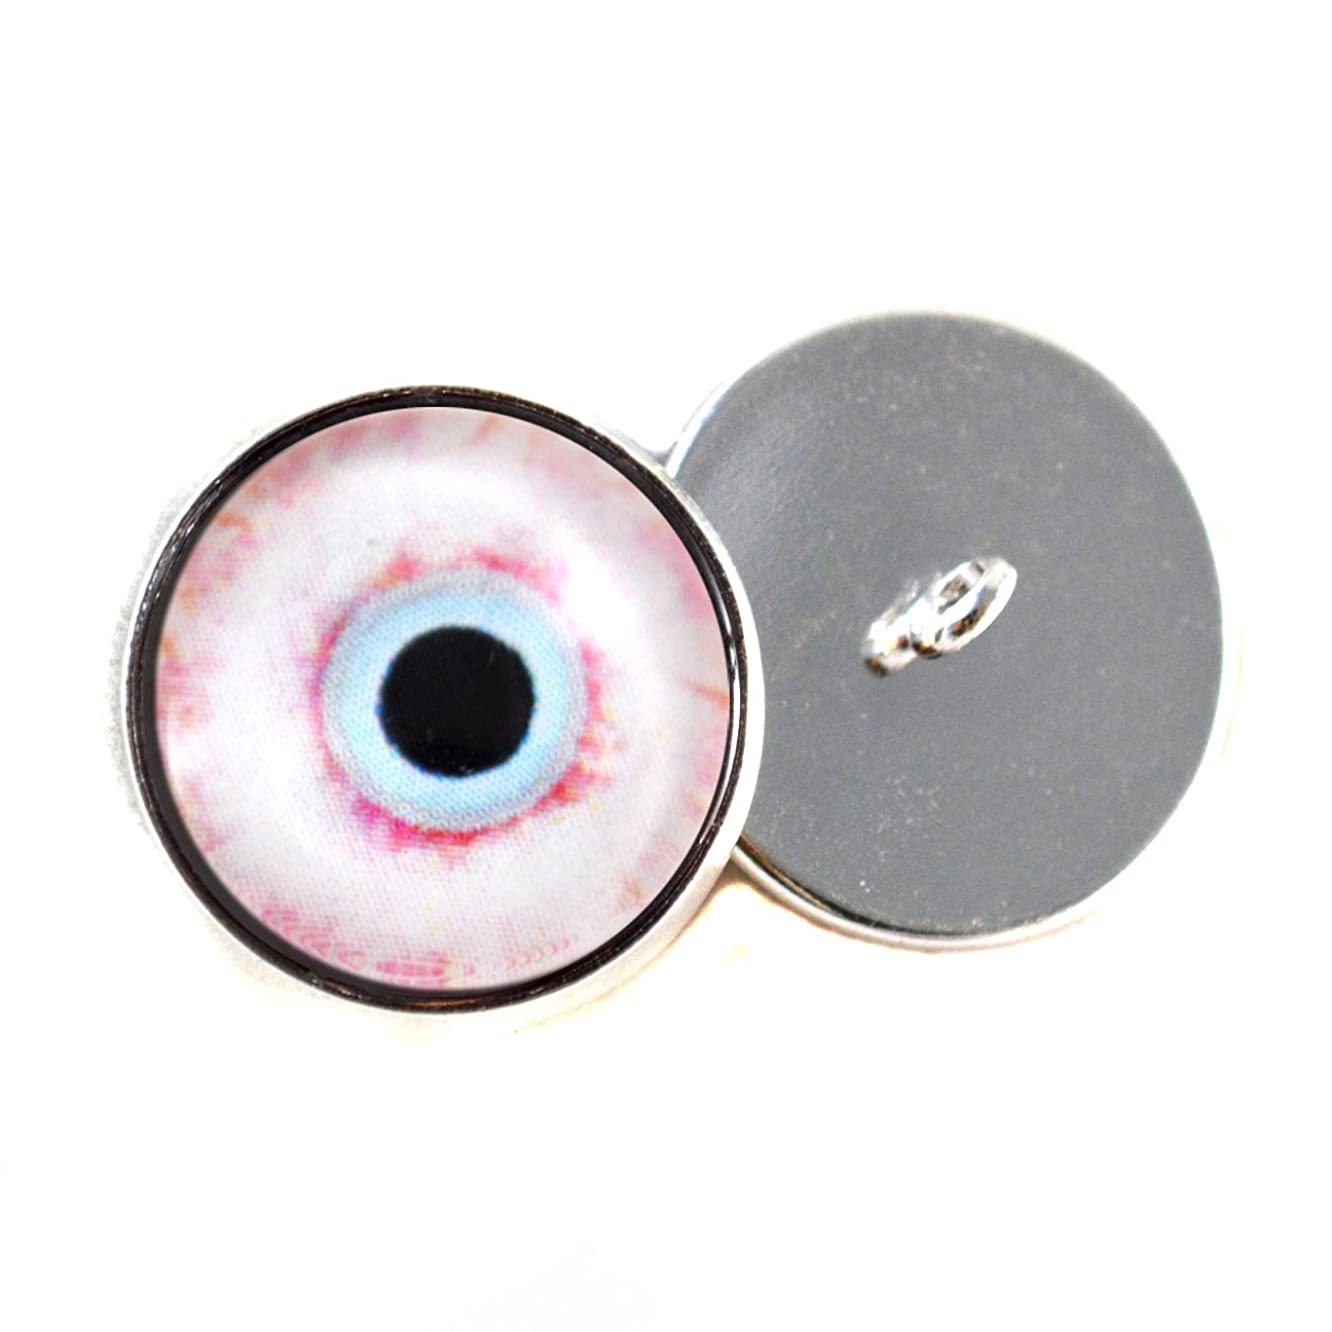 Glass Zombie Looped Back Eyes 16mm Eye Cabochons in Blue and White for Fantasy Art Doll Stuffed Animal Soft Sculptures or Jewelry Making Crafts Set of 2